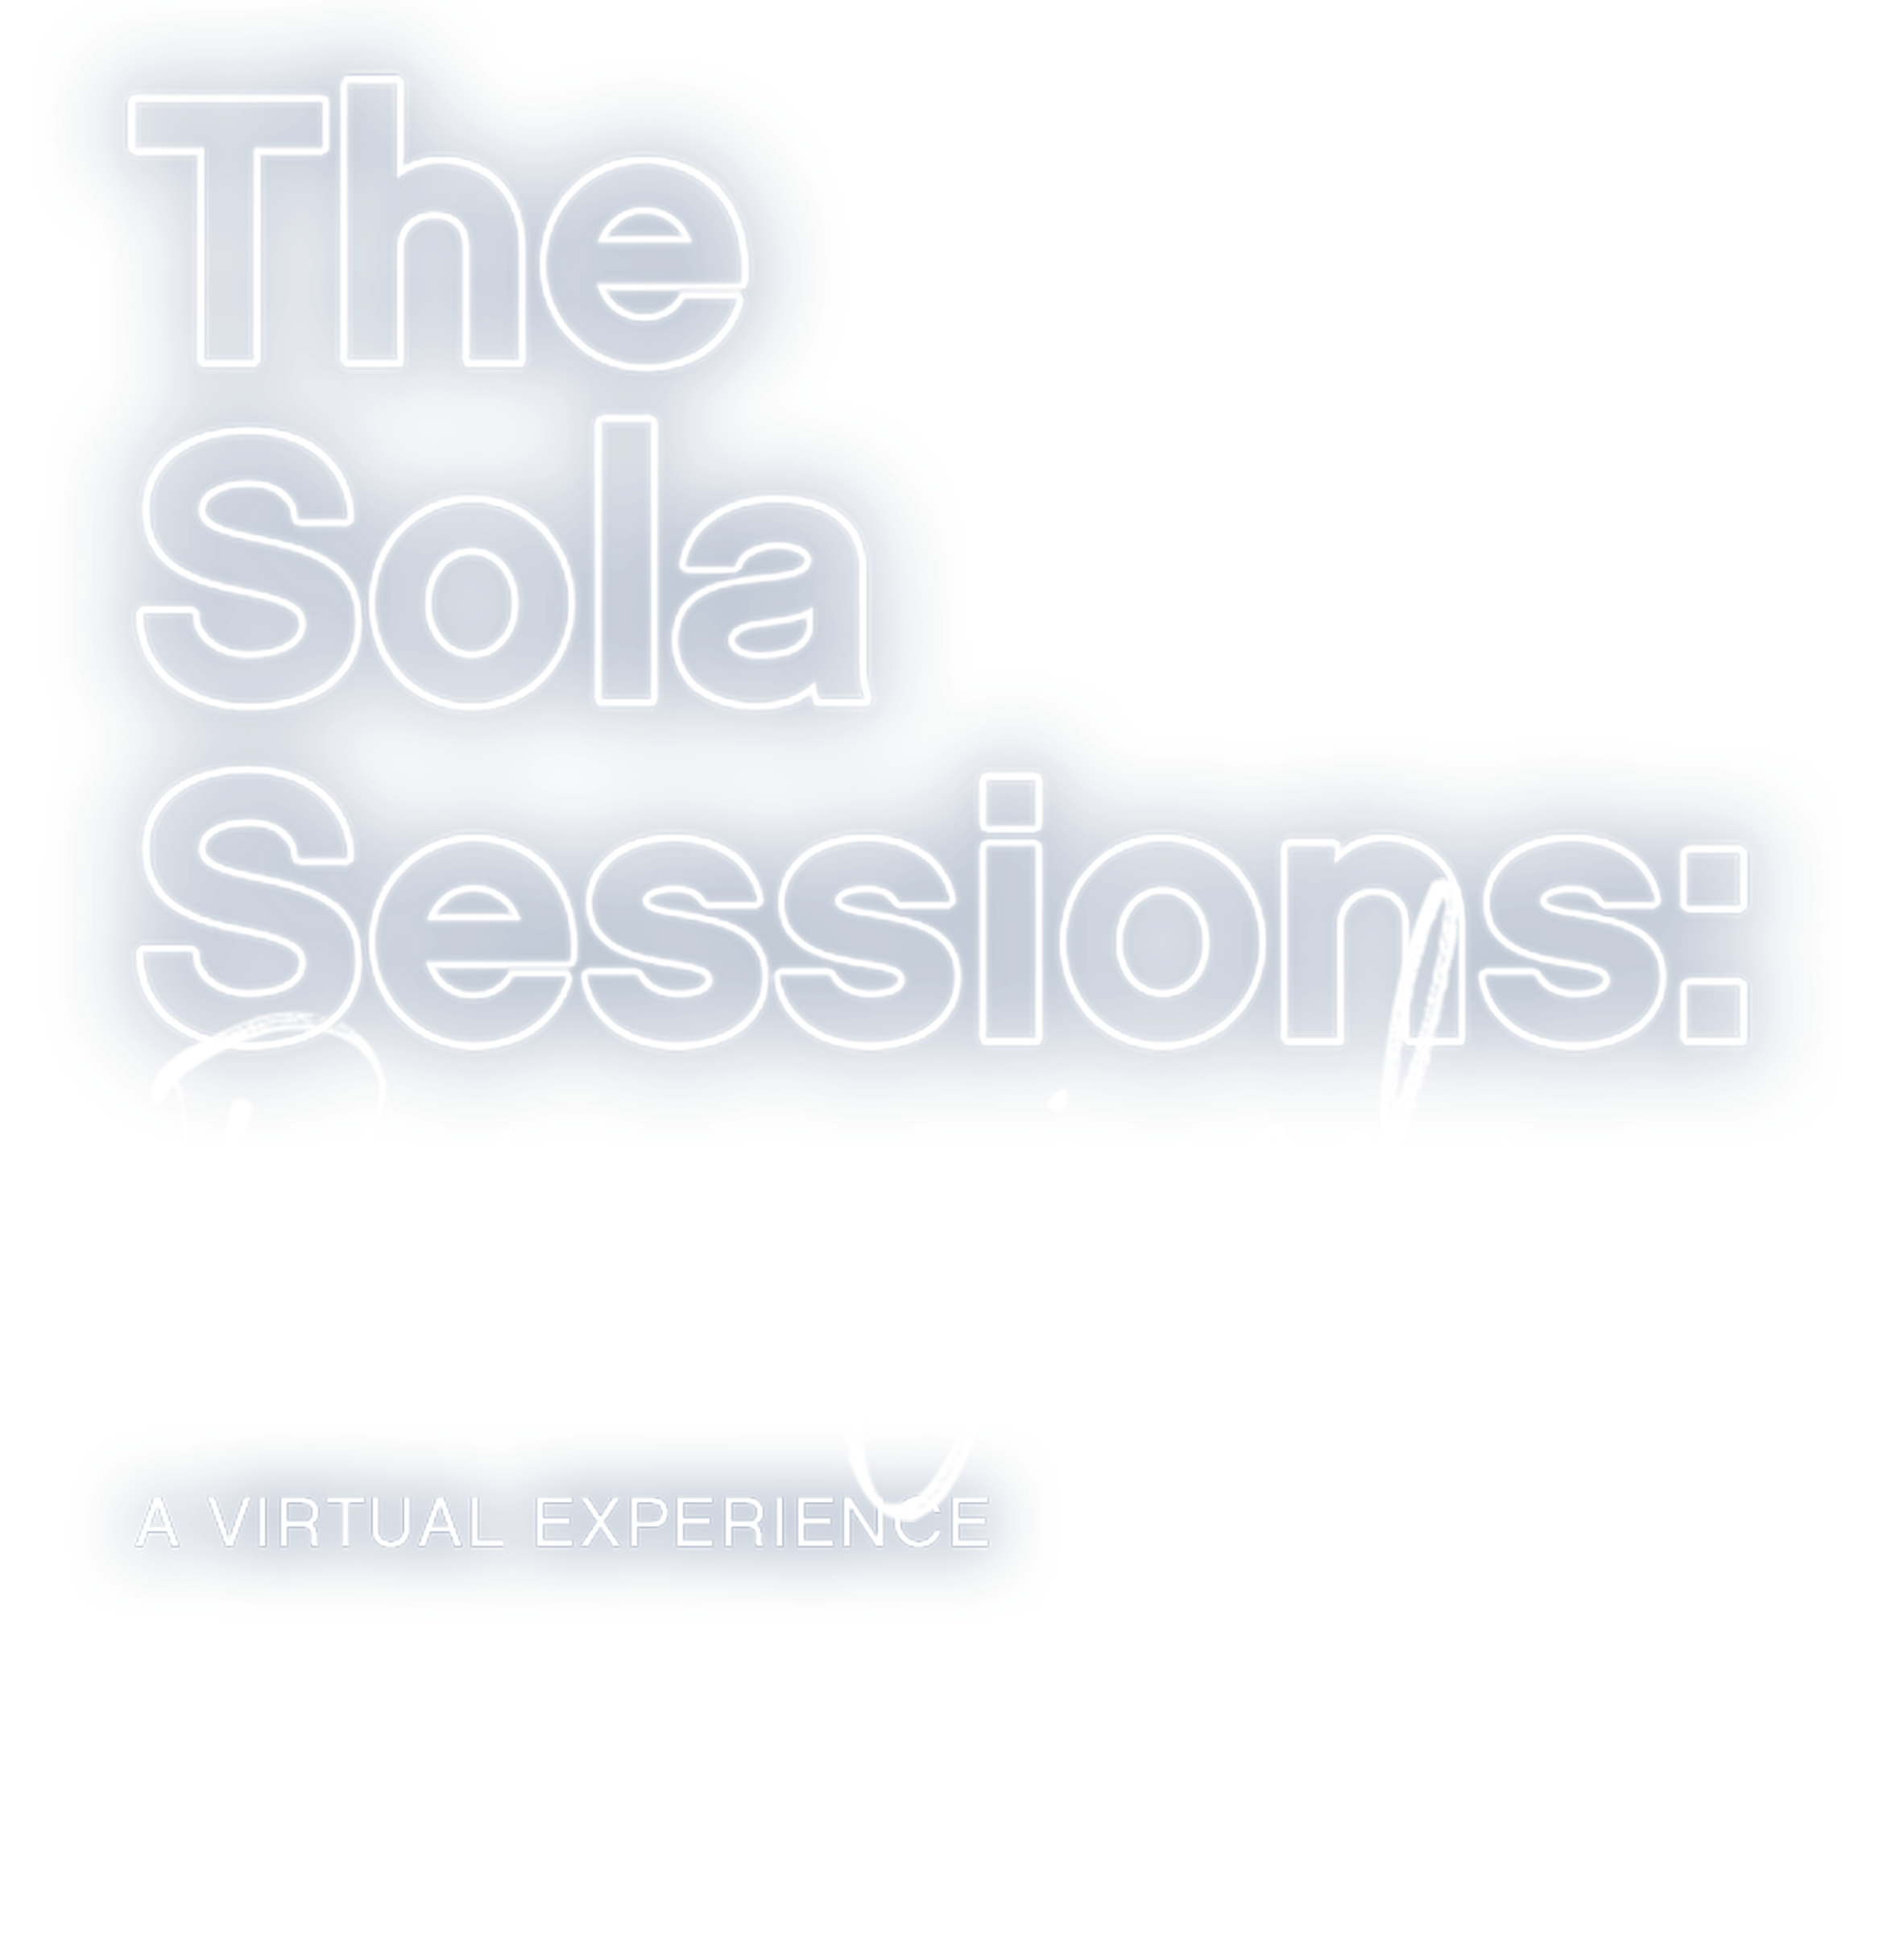 The Sola Sessions: Reimagined, A Virtual Experience - Monday, September 27th, 2021